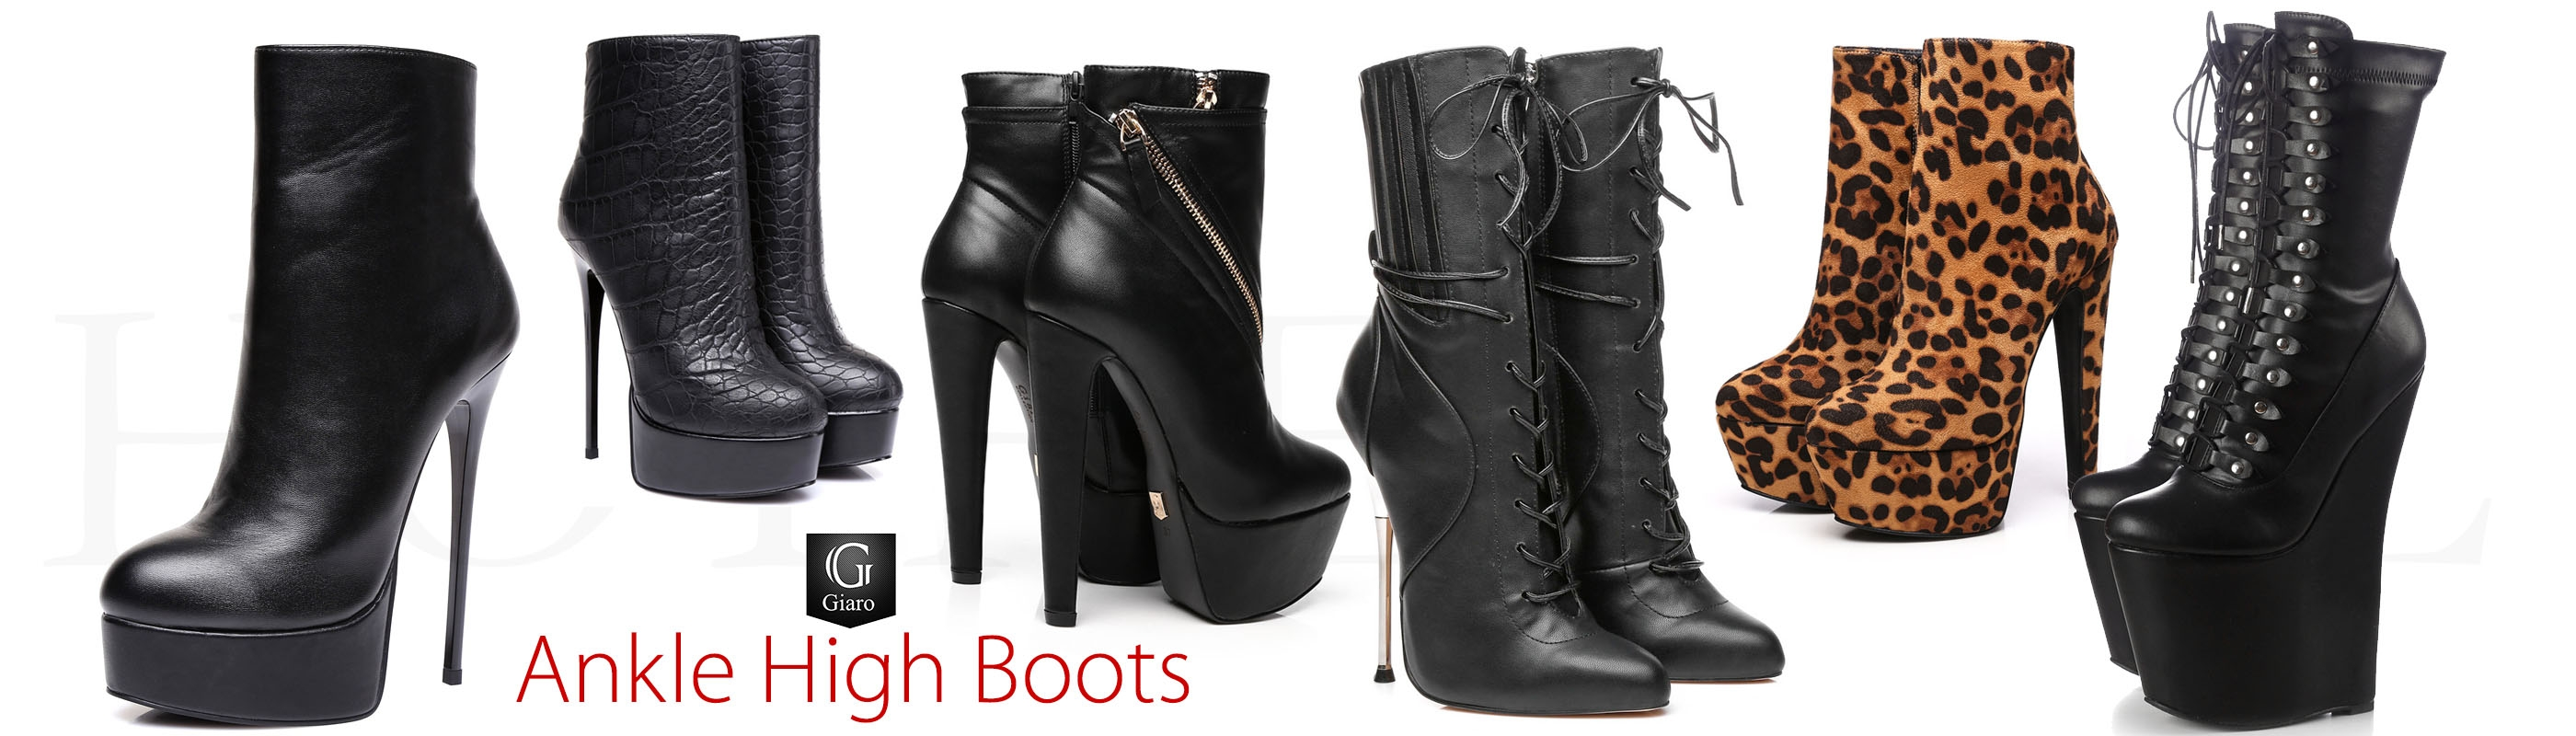 440fe18bd050 ... knee high boots  Giaro ankle high platform and wedge boots